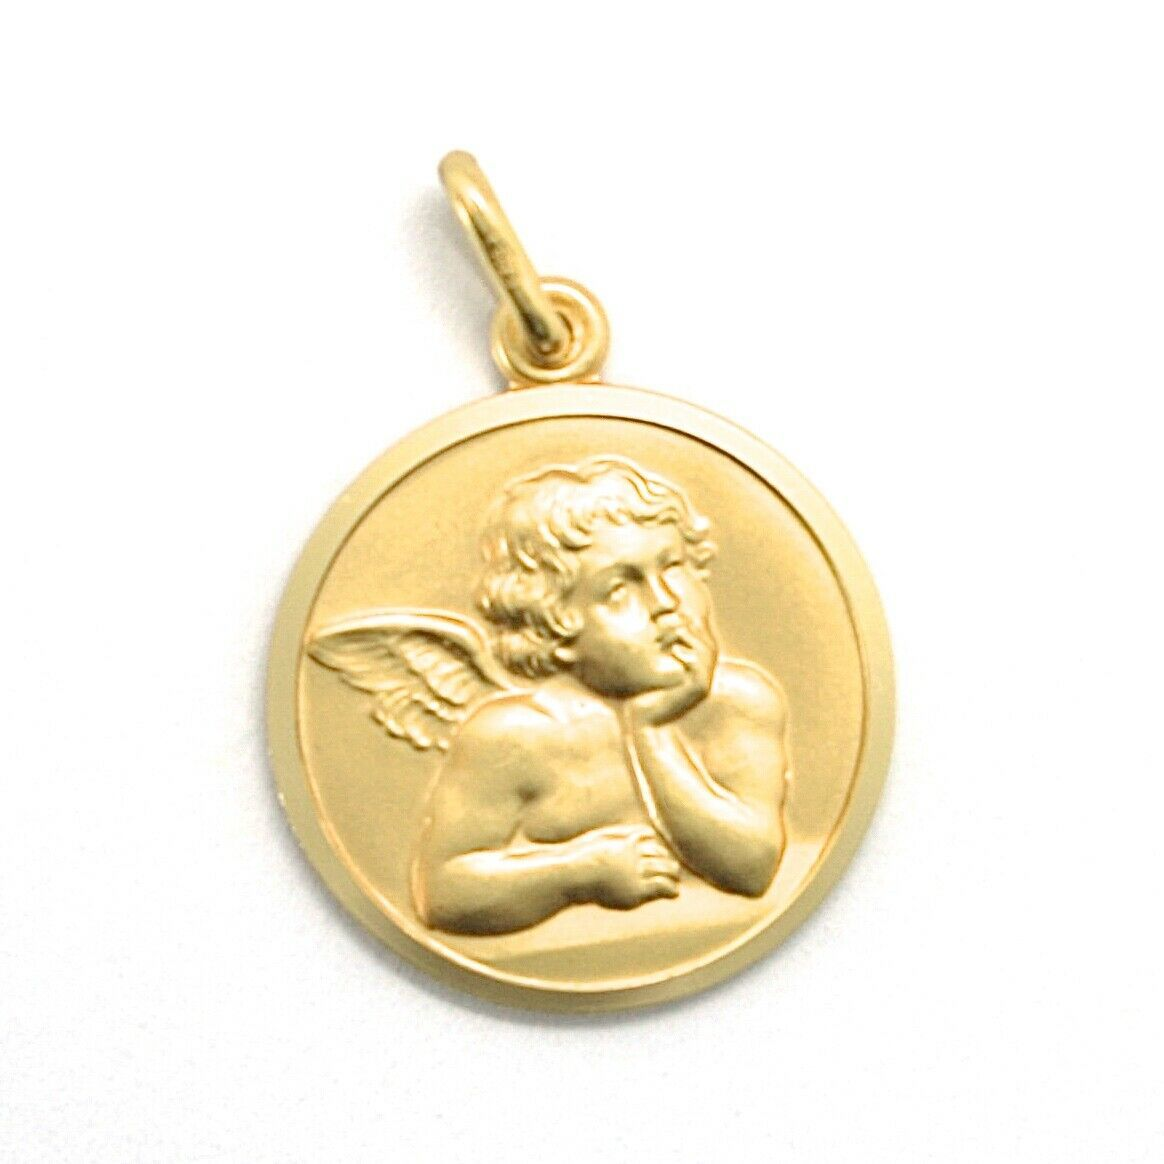 SOLID 18K YELLOW GOLD MEDAL, GUARDIAN ANGEL, 17 mm DIAMETER, VERY DETAILED